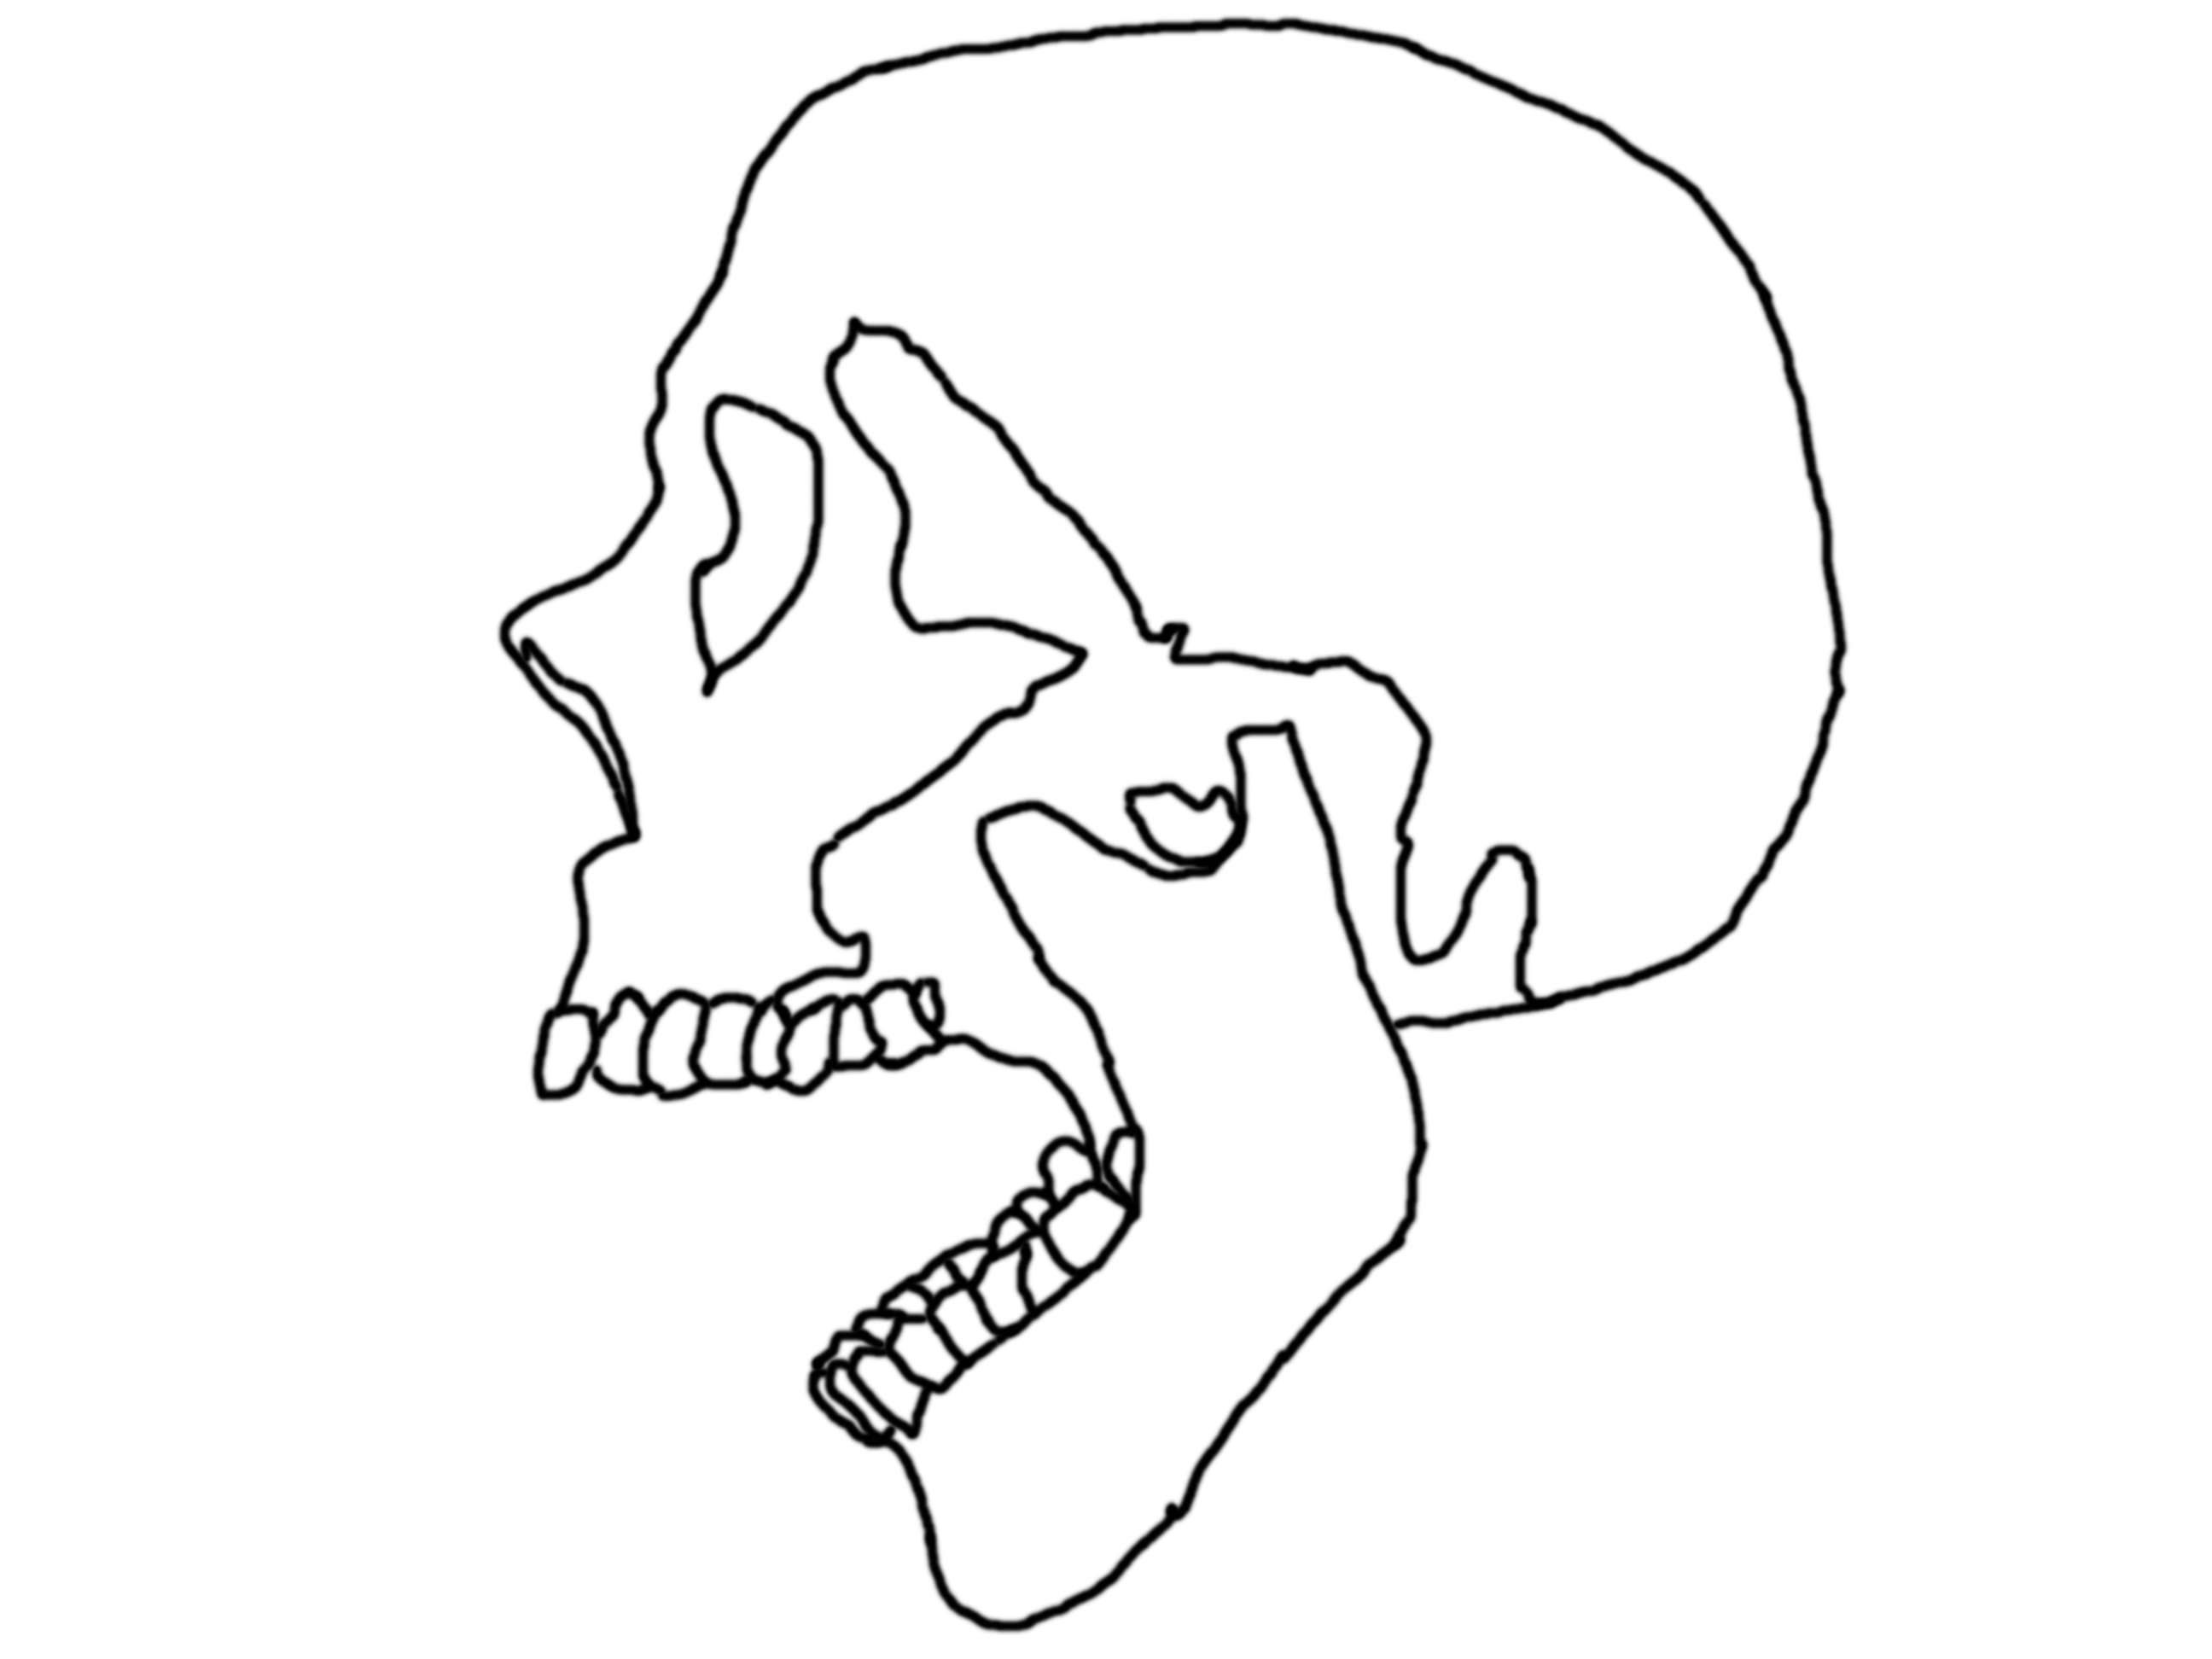 2592x1944 Outline Of Skull By Lkwai